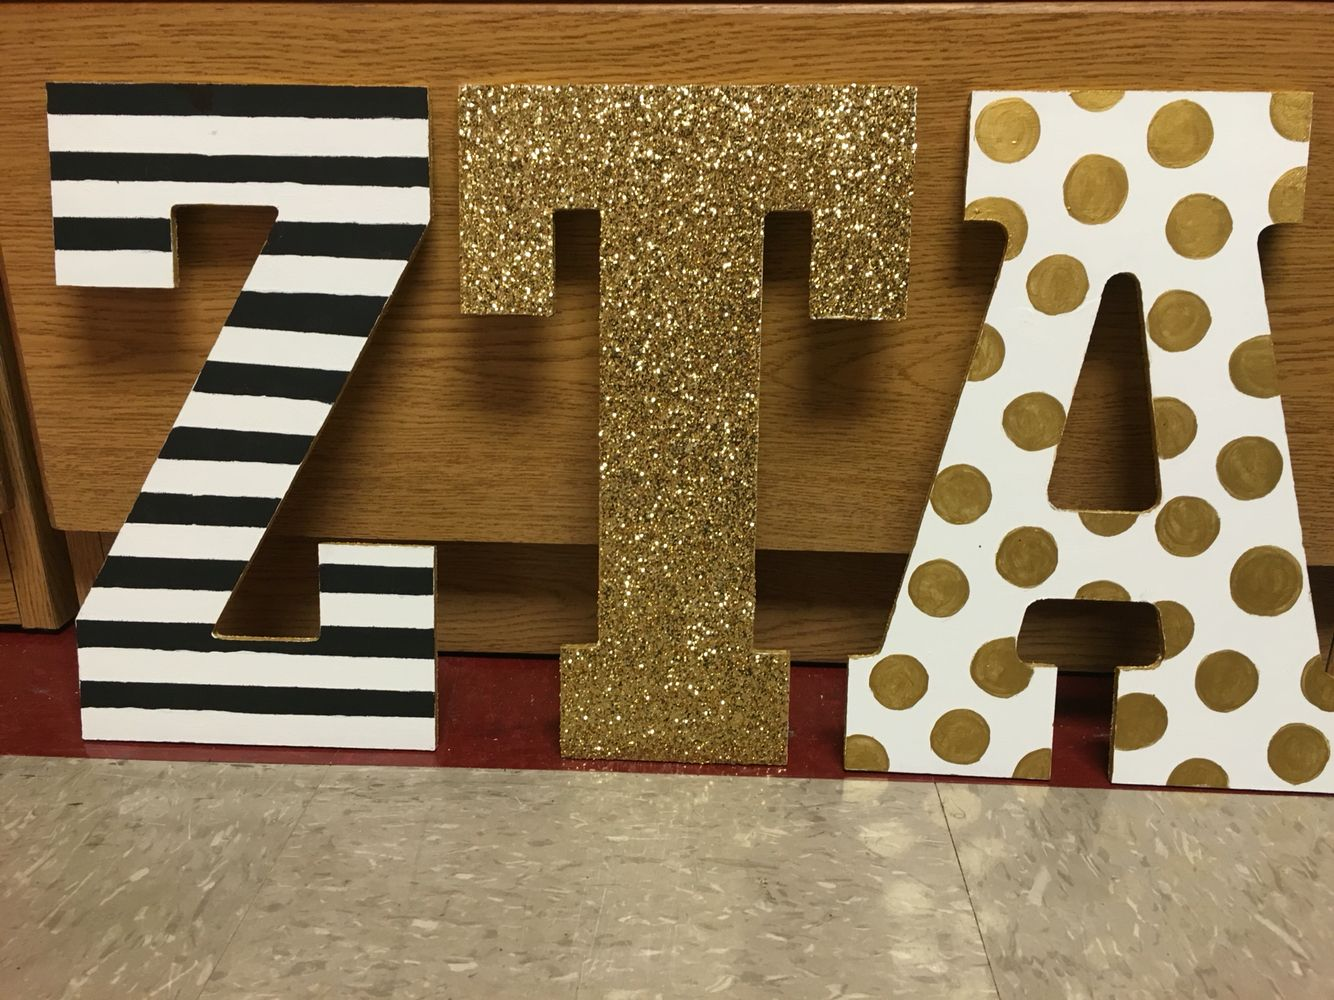 zeta tau alpha little letters